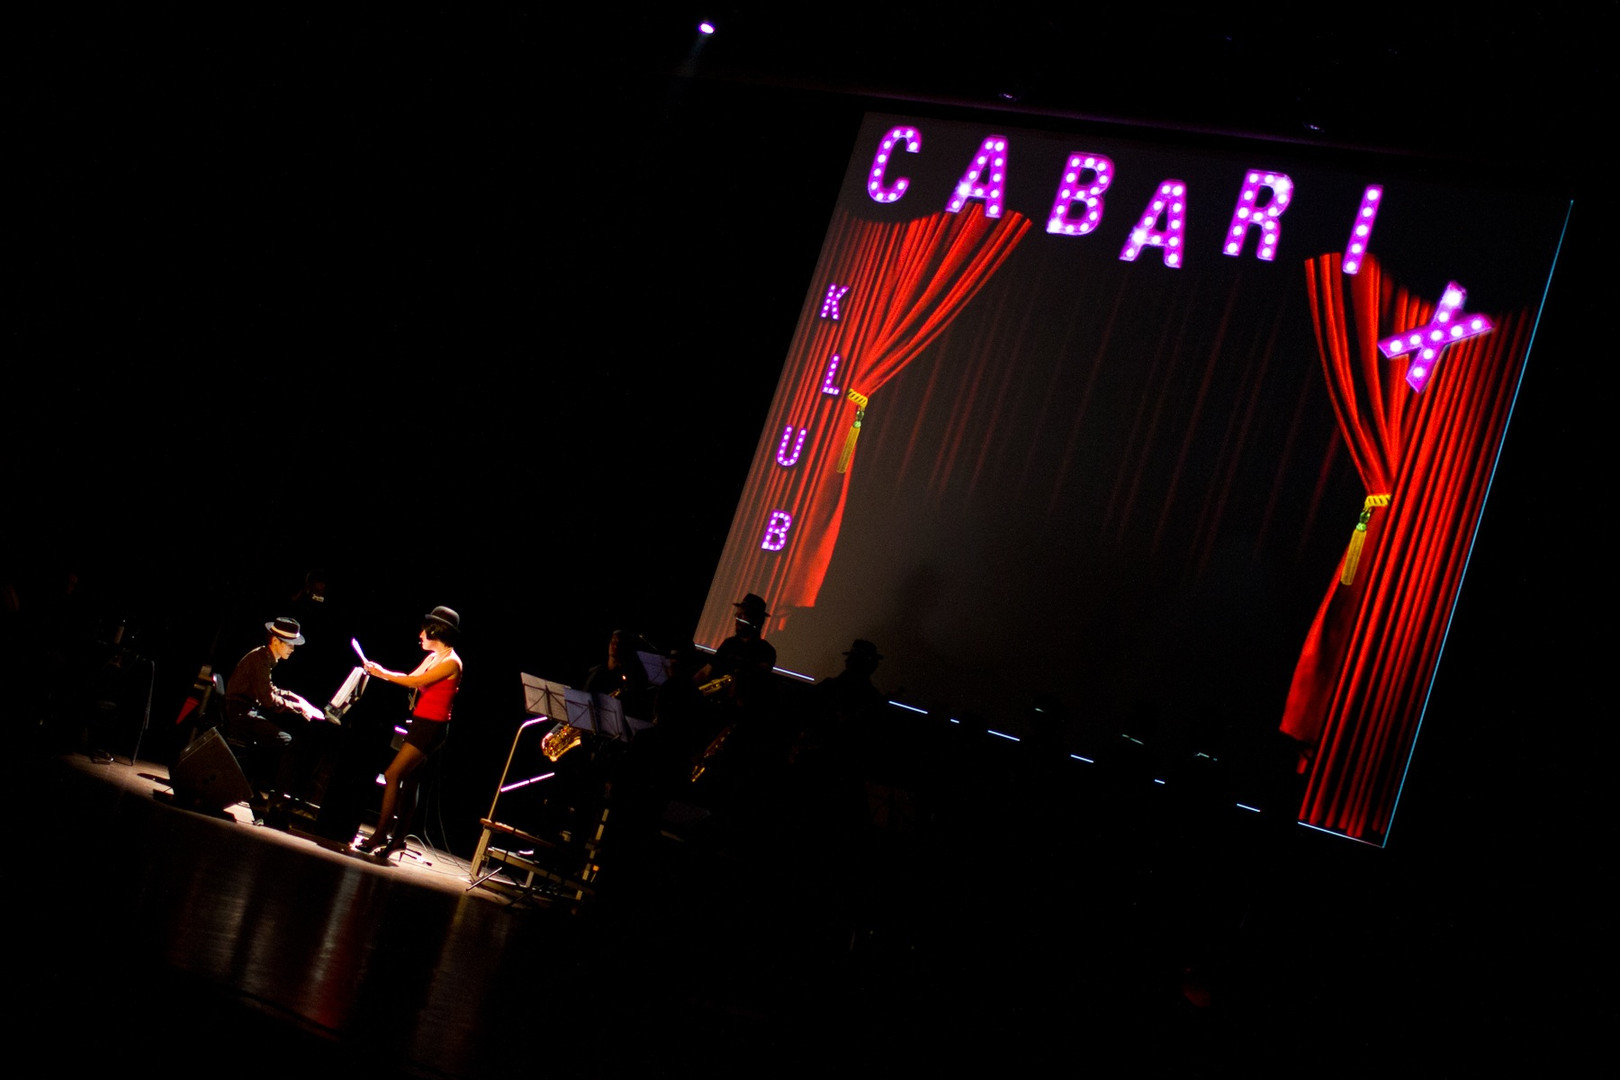 Spectacle CabariX